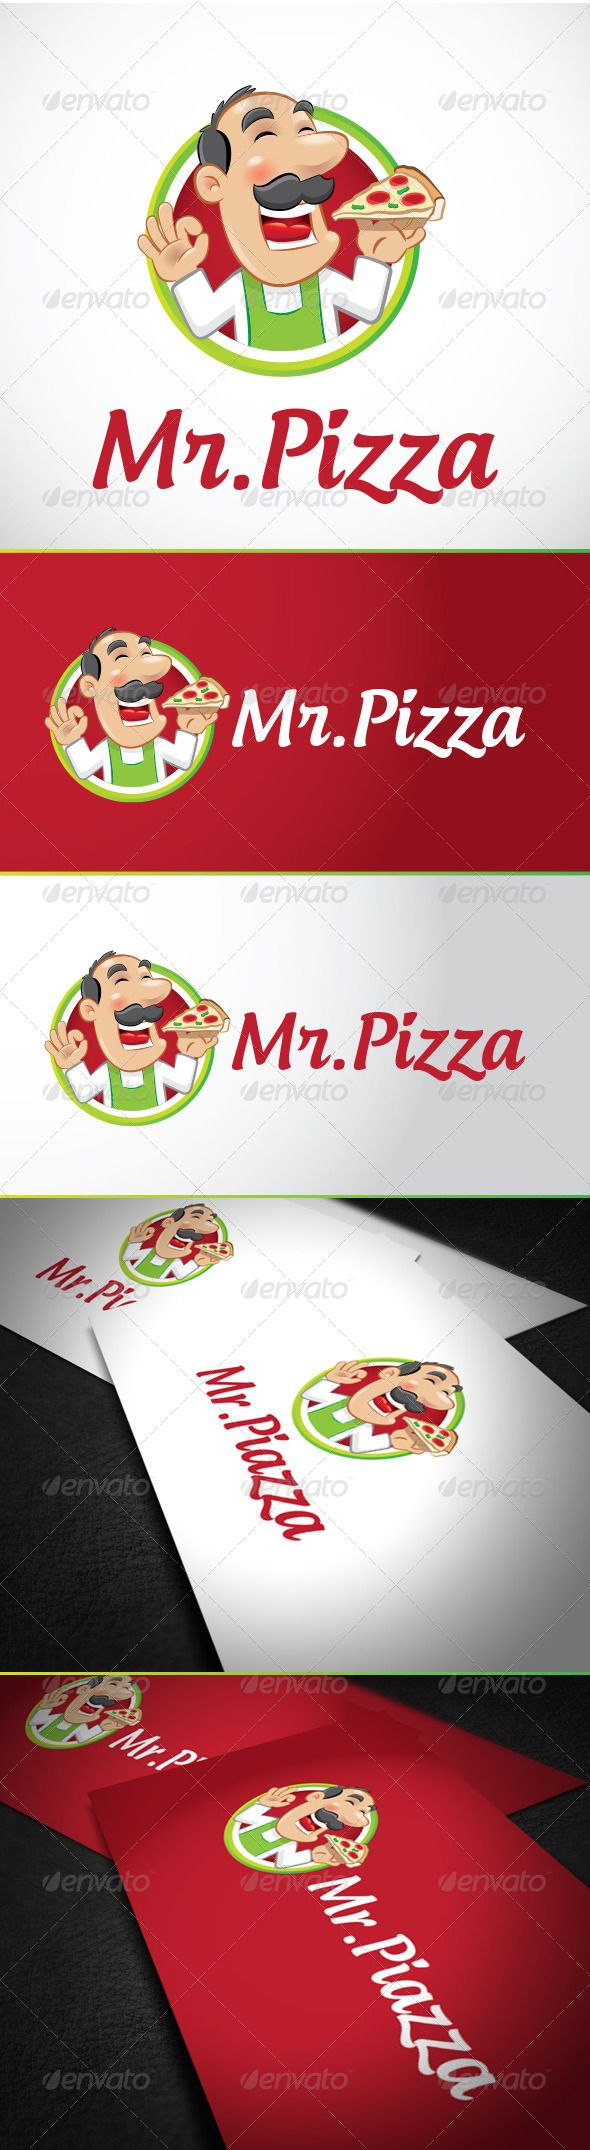 Mr Pizza Logo Template by Peregrino96 Easy to edit with organized layers. Vector logo Resisable; Vector Horizontal and Vertical display; Symbol files high resolution; S